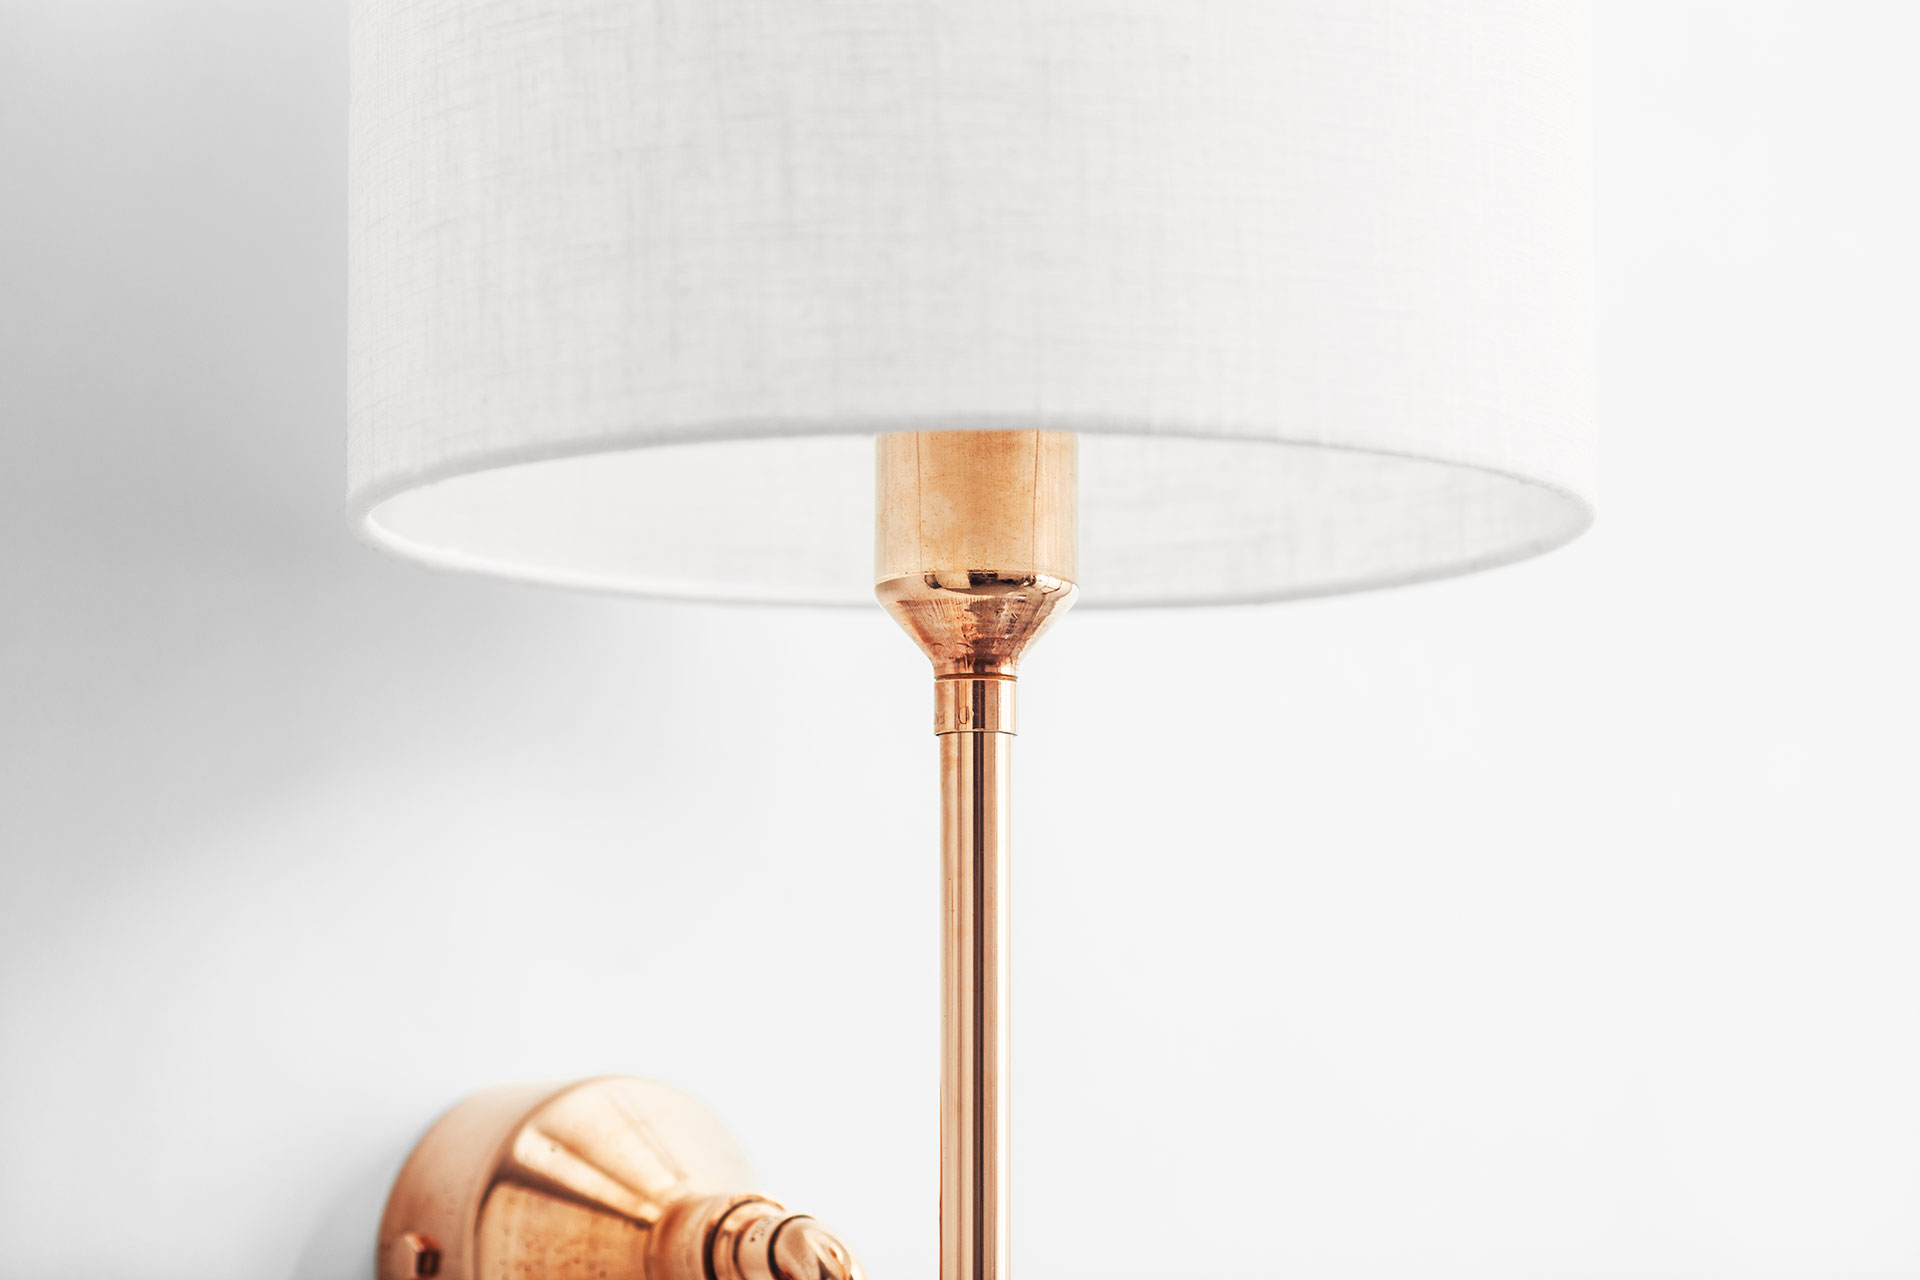 Contemporary design copper wall lamp with white linen shade